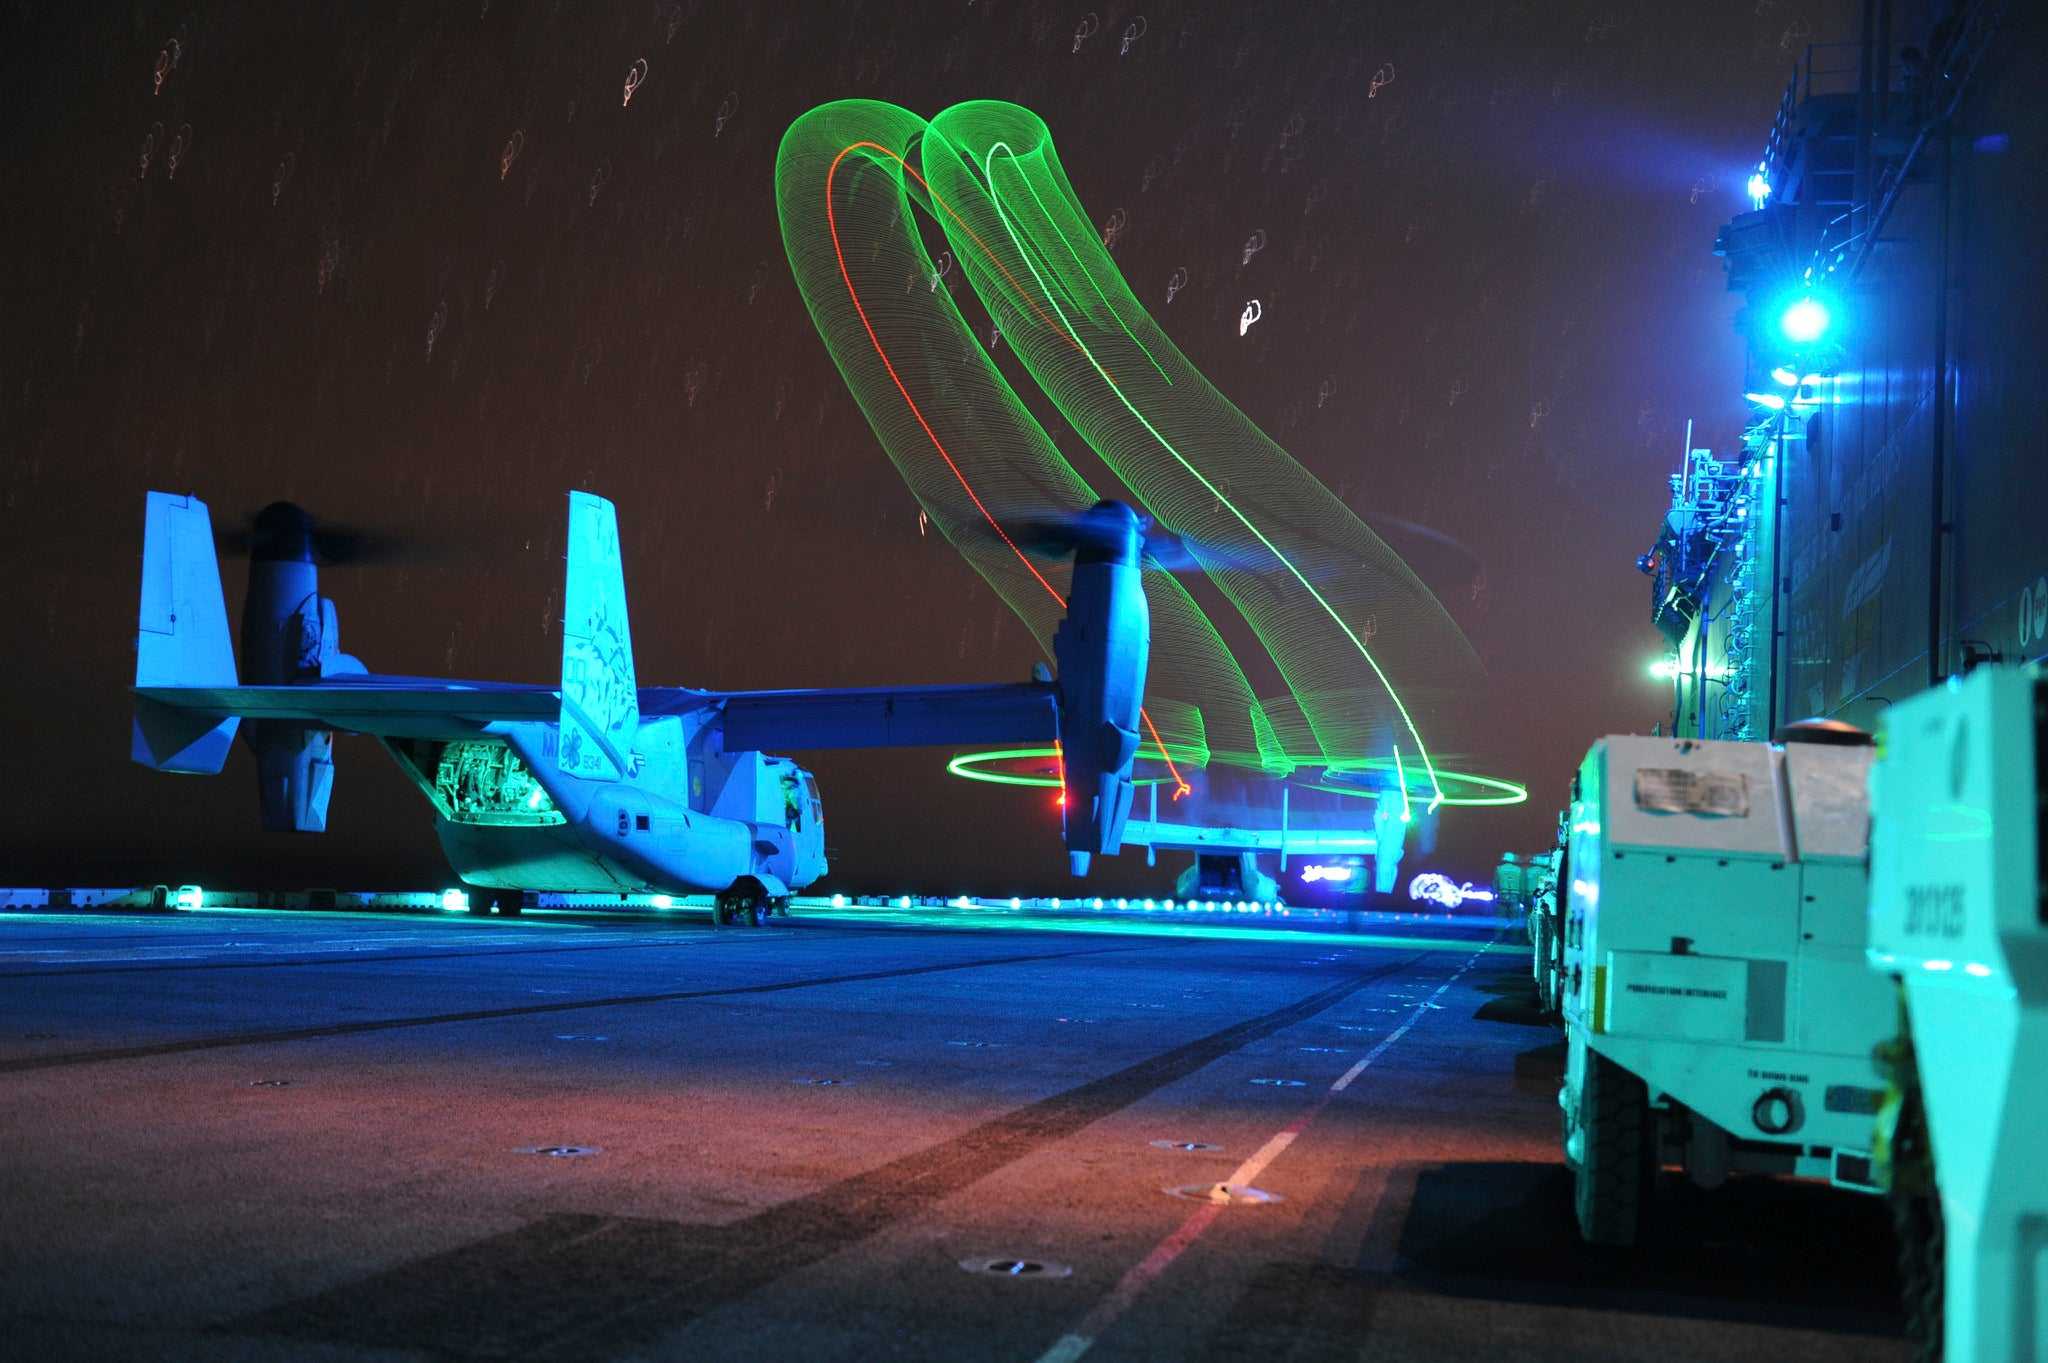 Cool photo of a V-22 Osprey launching from an amphibious assault ship